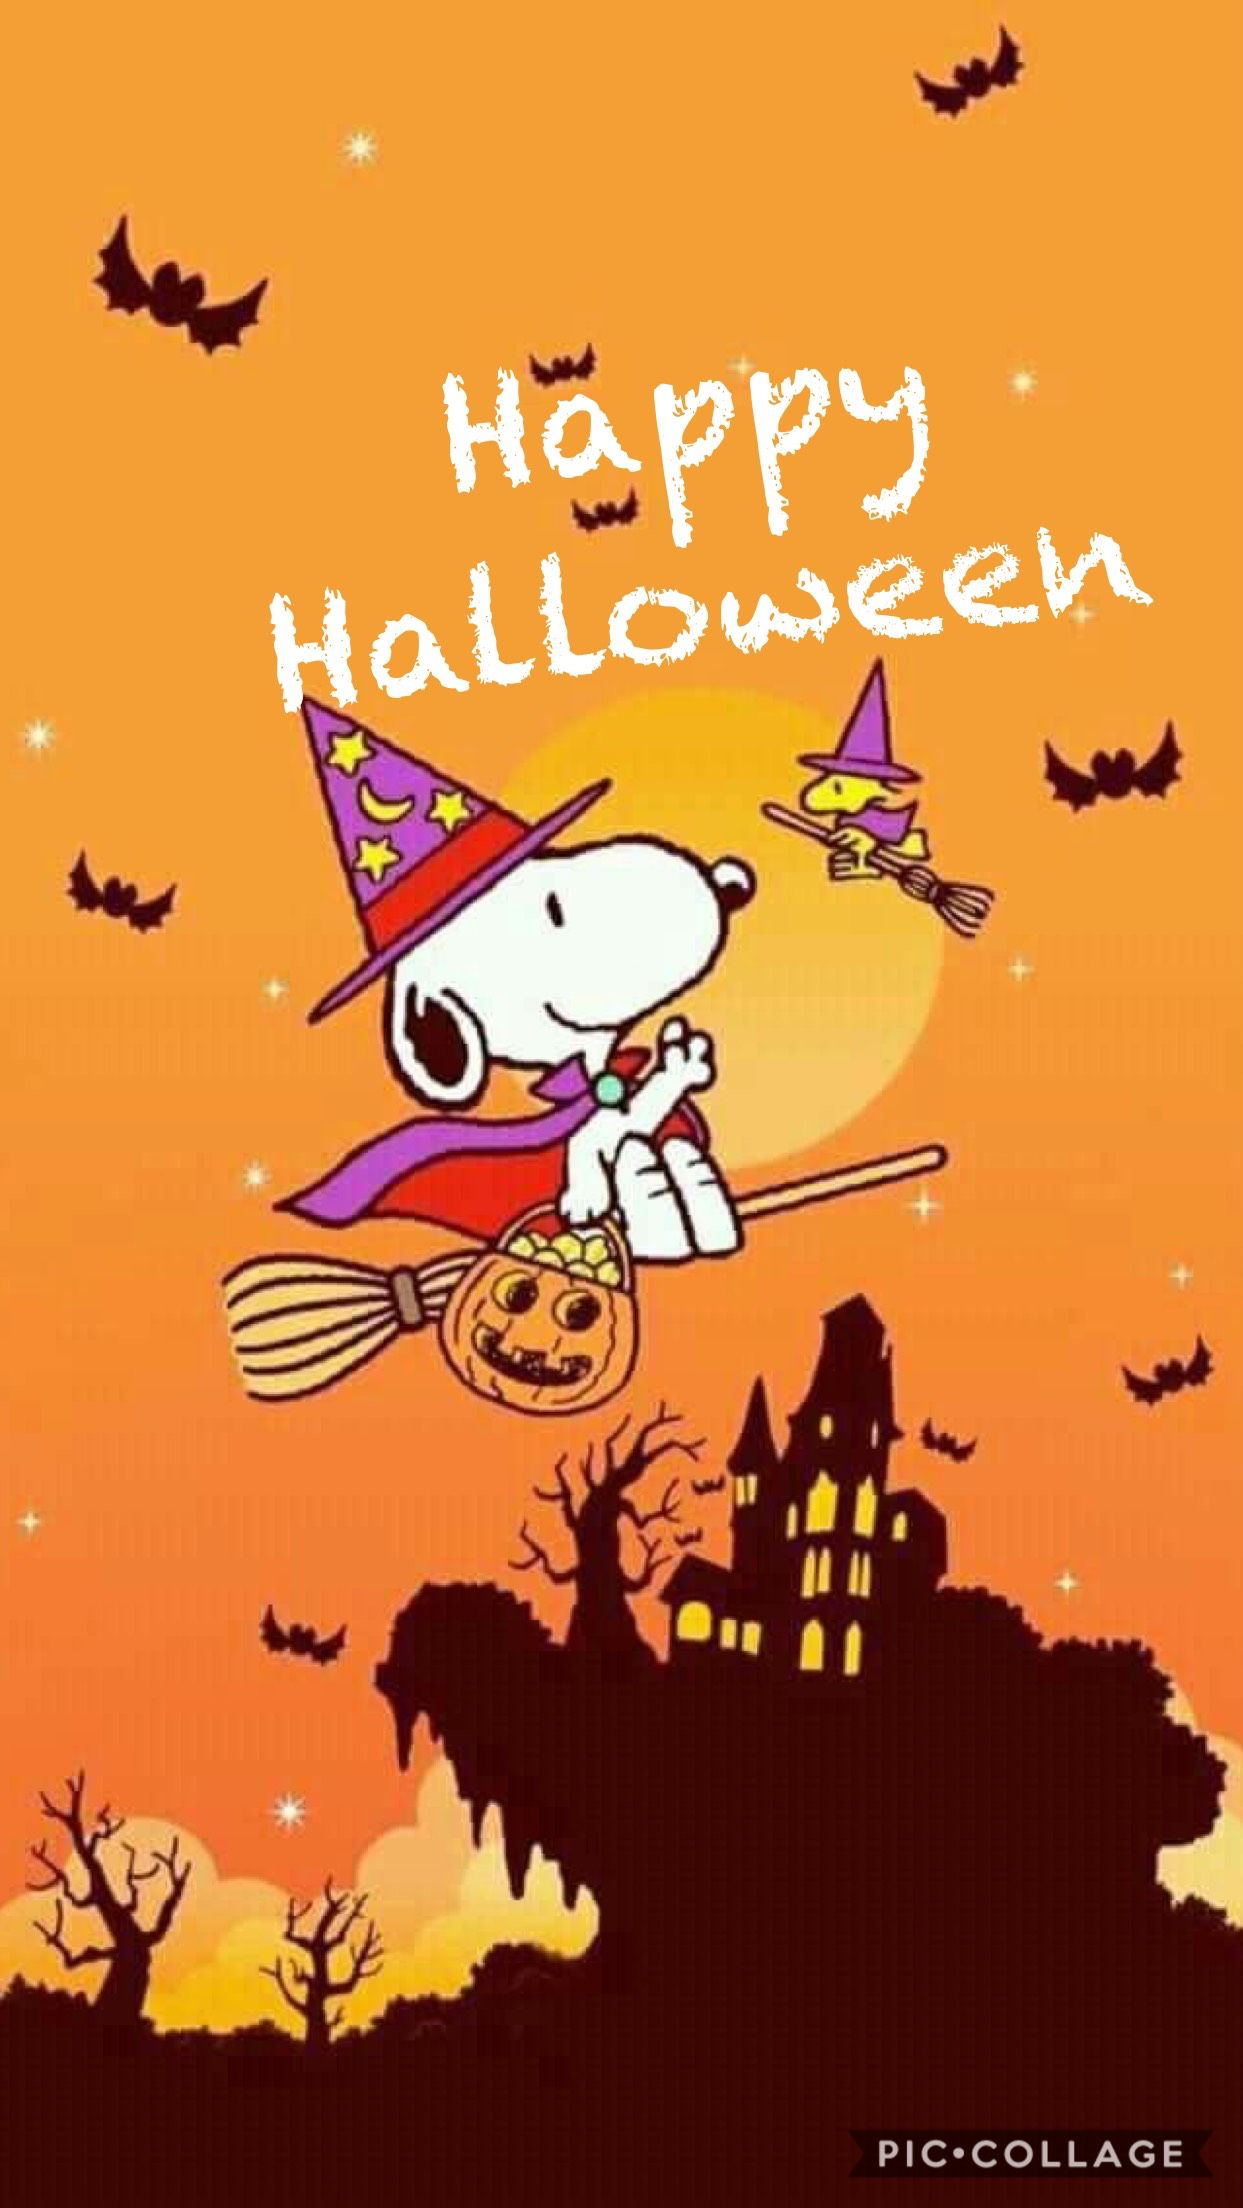 Pin By 美桜 坂田 On Quotes Snoopy Halloween Halloween Wallpaper Halloween Cartoons